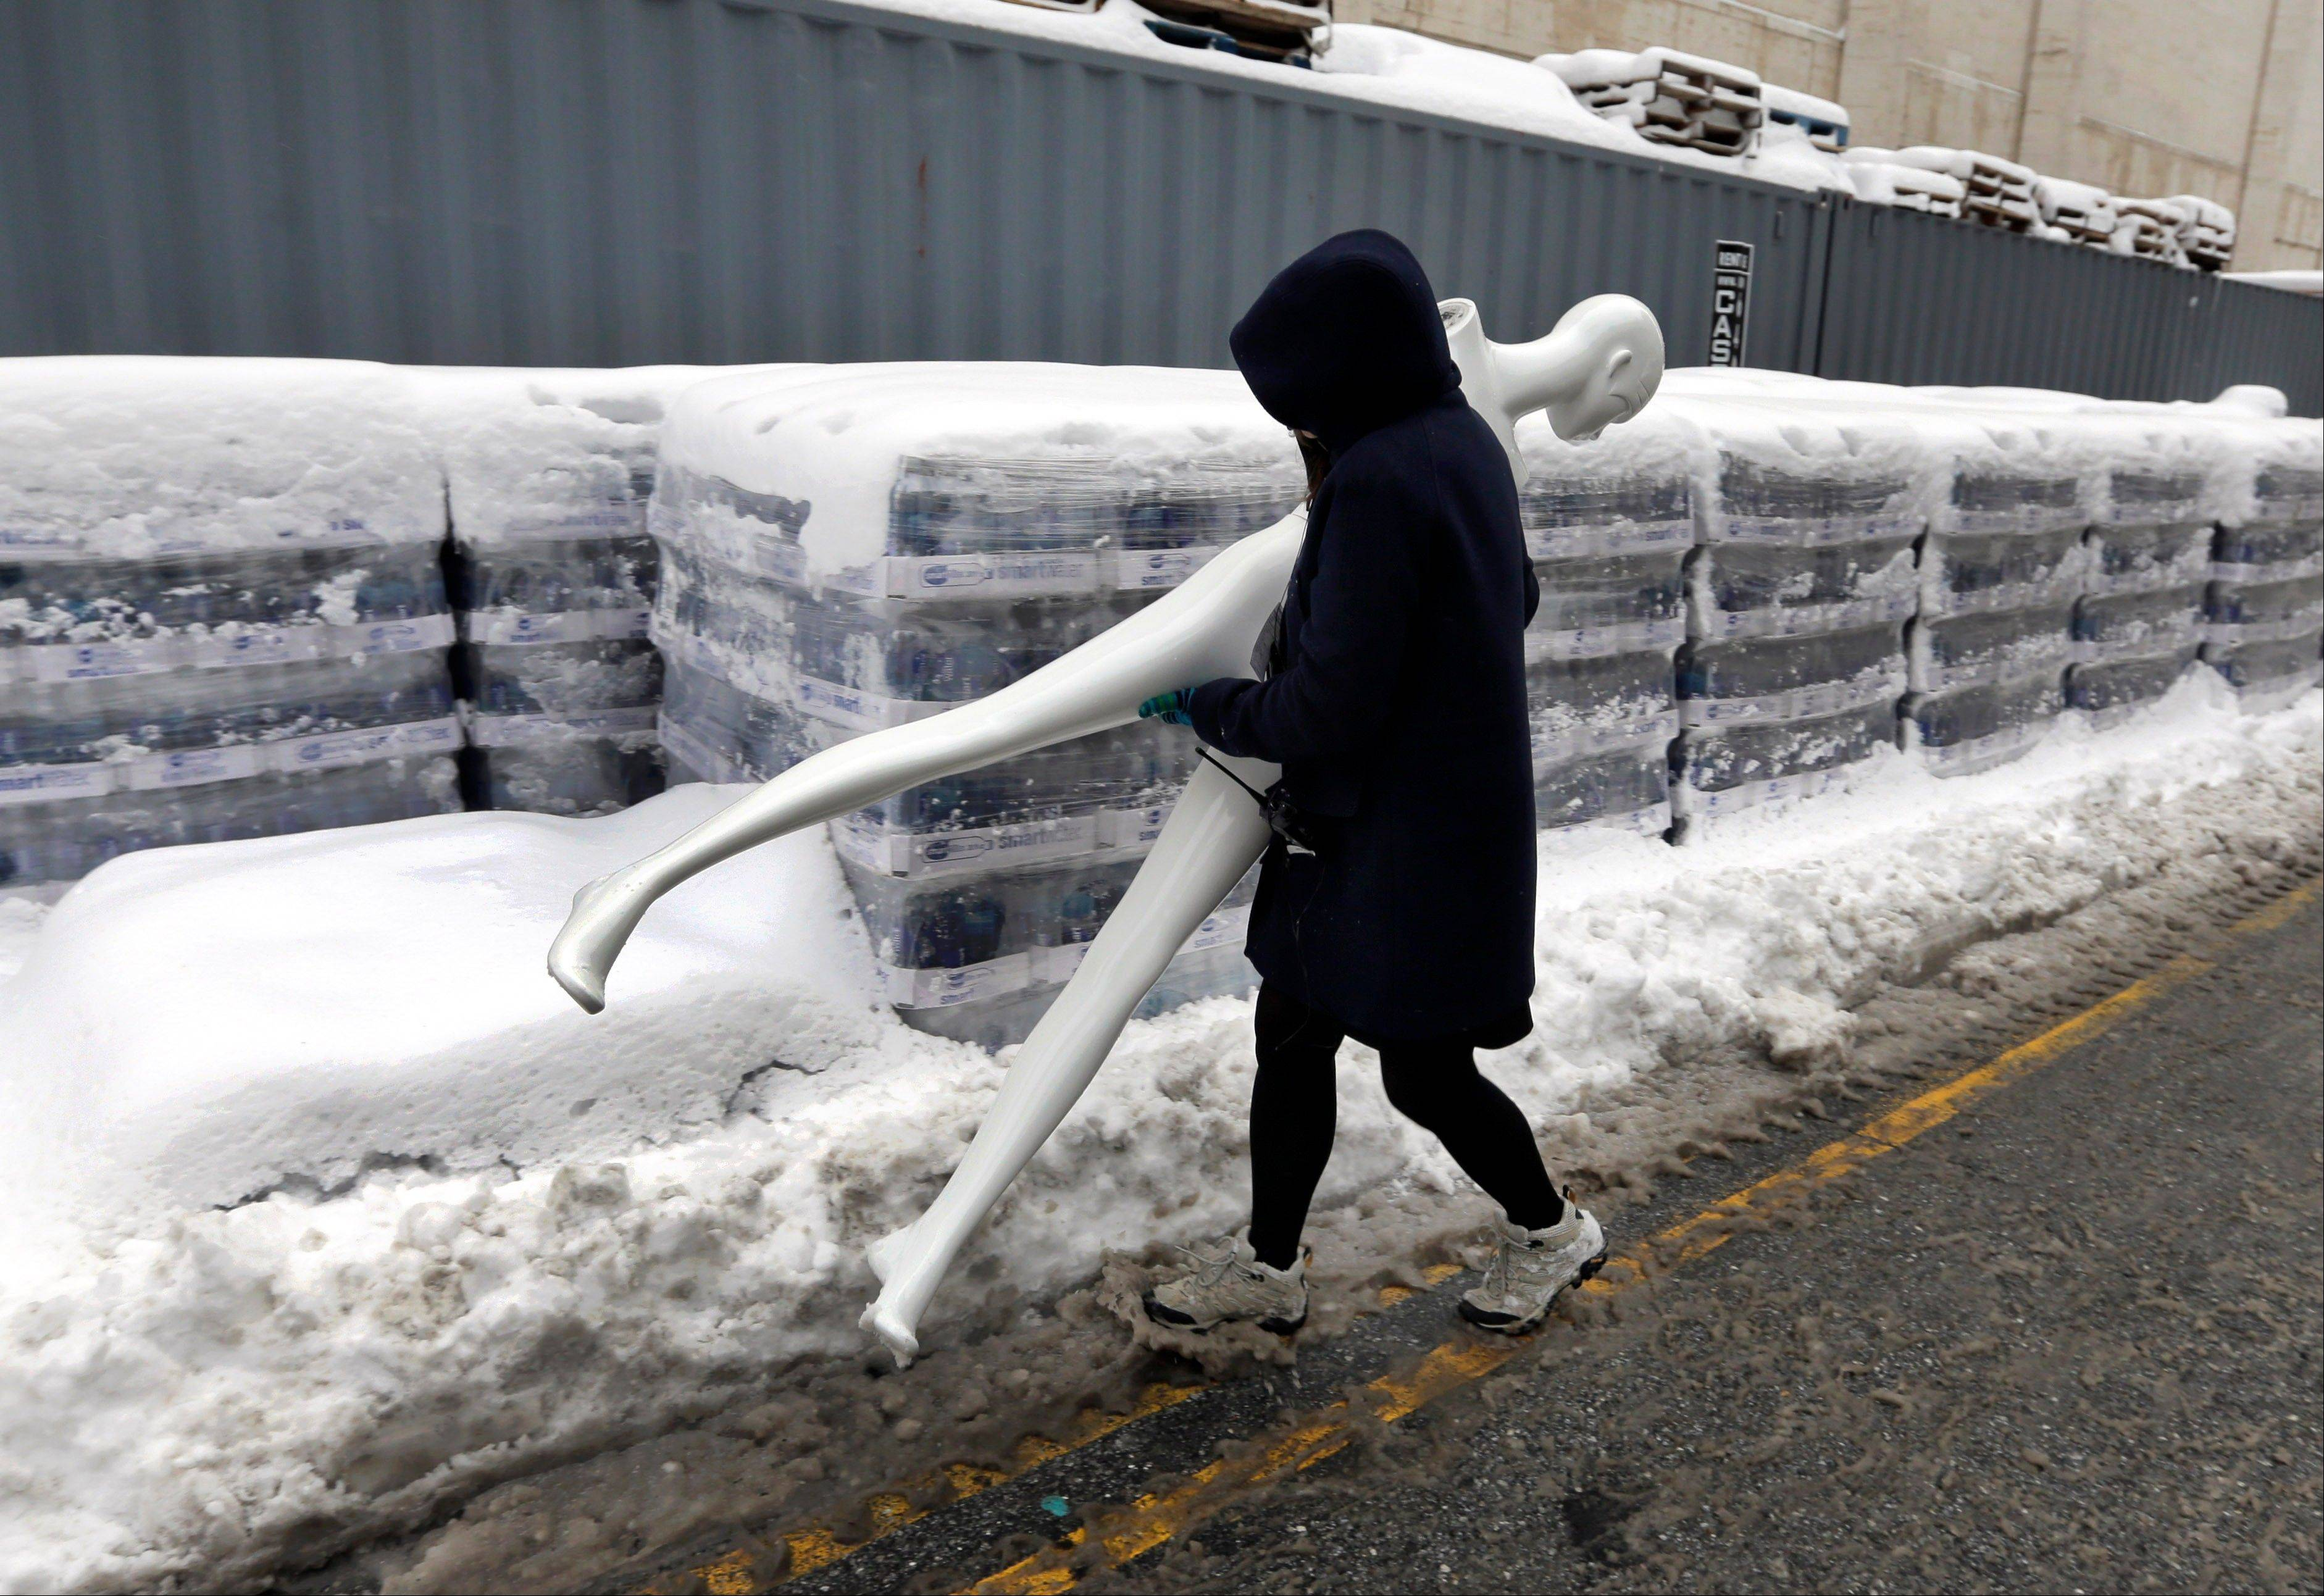 A worker carries a mannequin outside Lincoln Center, home of New York's Fashion Week shows, Saturday. In New York City, the snow total in Central Park was 8.1 inches by 3 a.m.